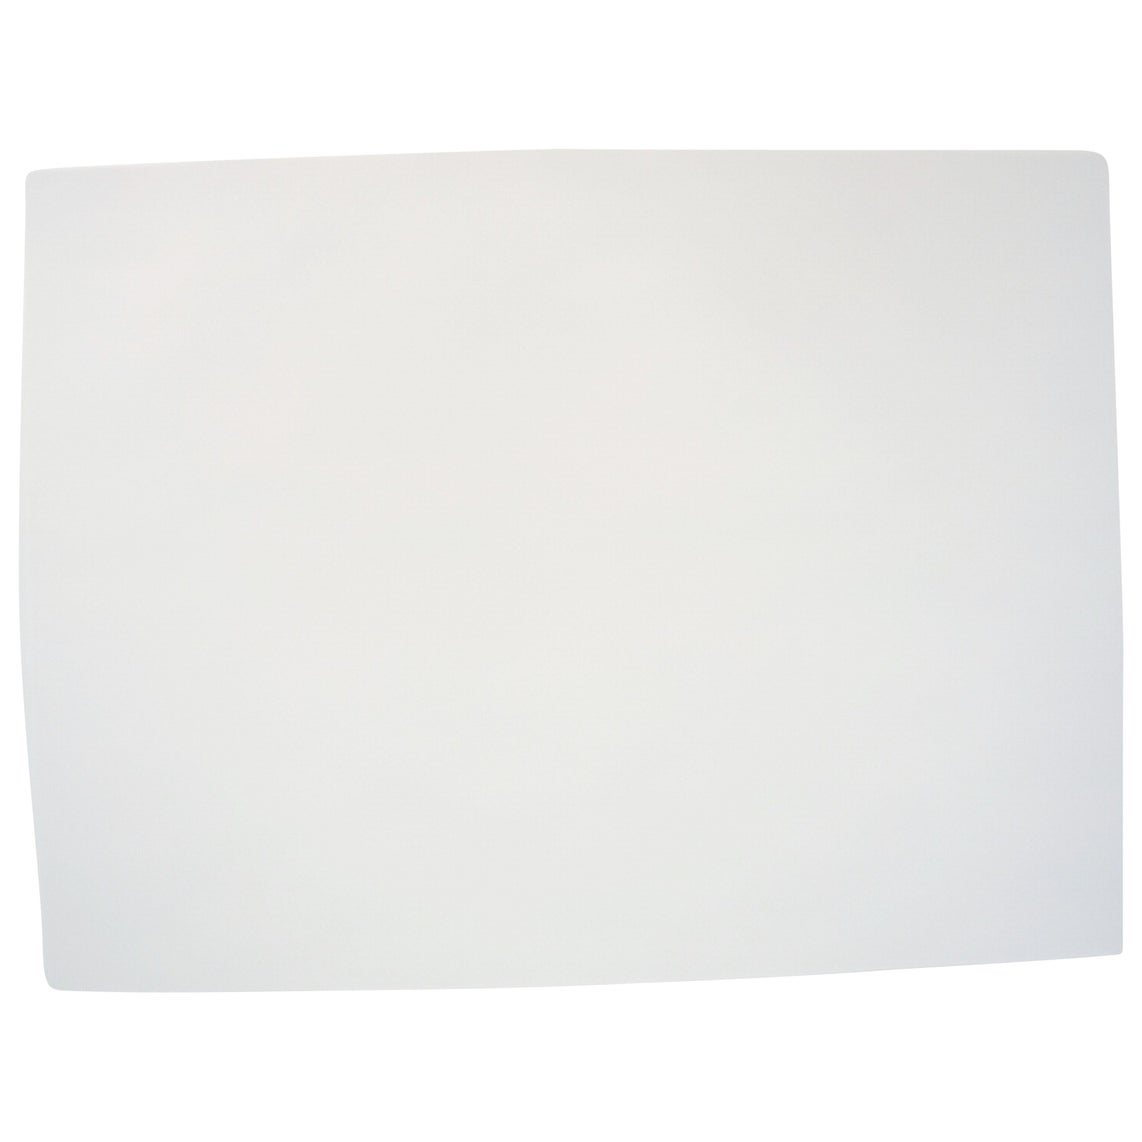 Extra-White 12 x 18 Inches Sax Sulphite Drawing Paper 60 lb Pack of 500